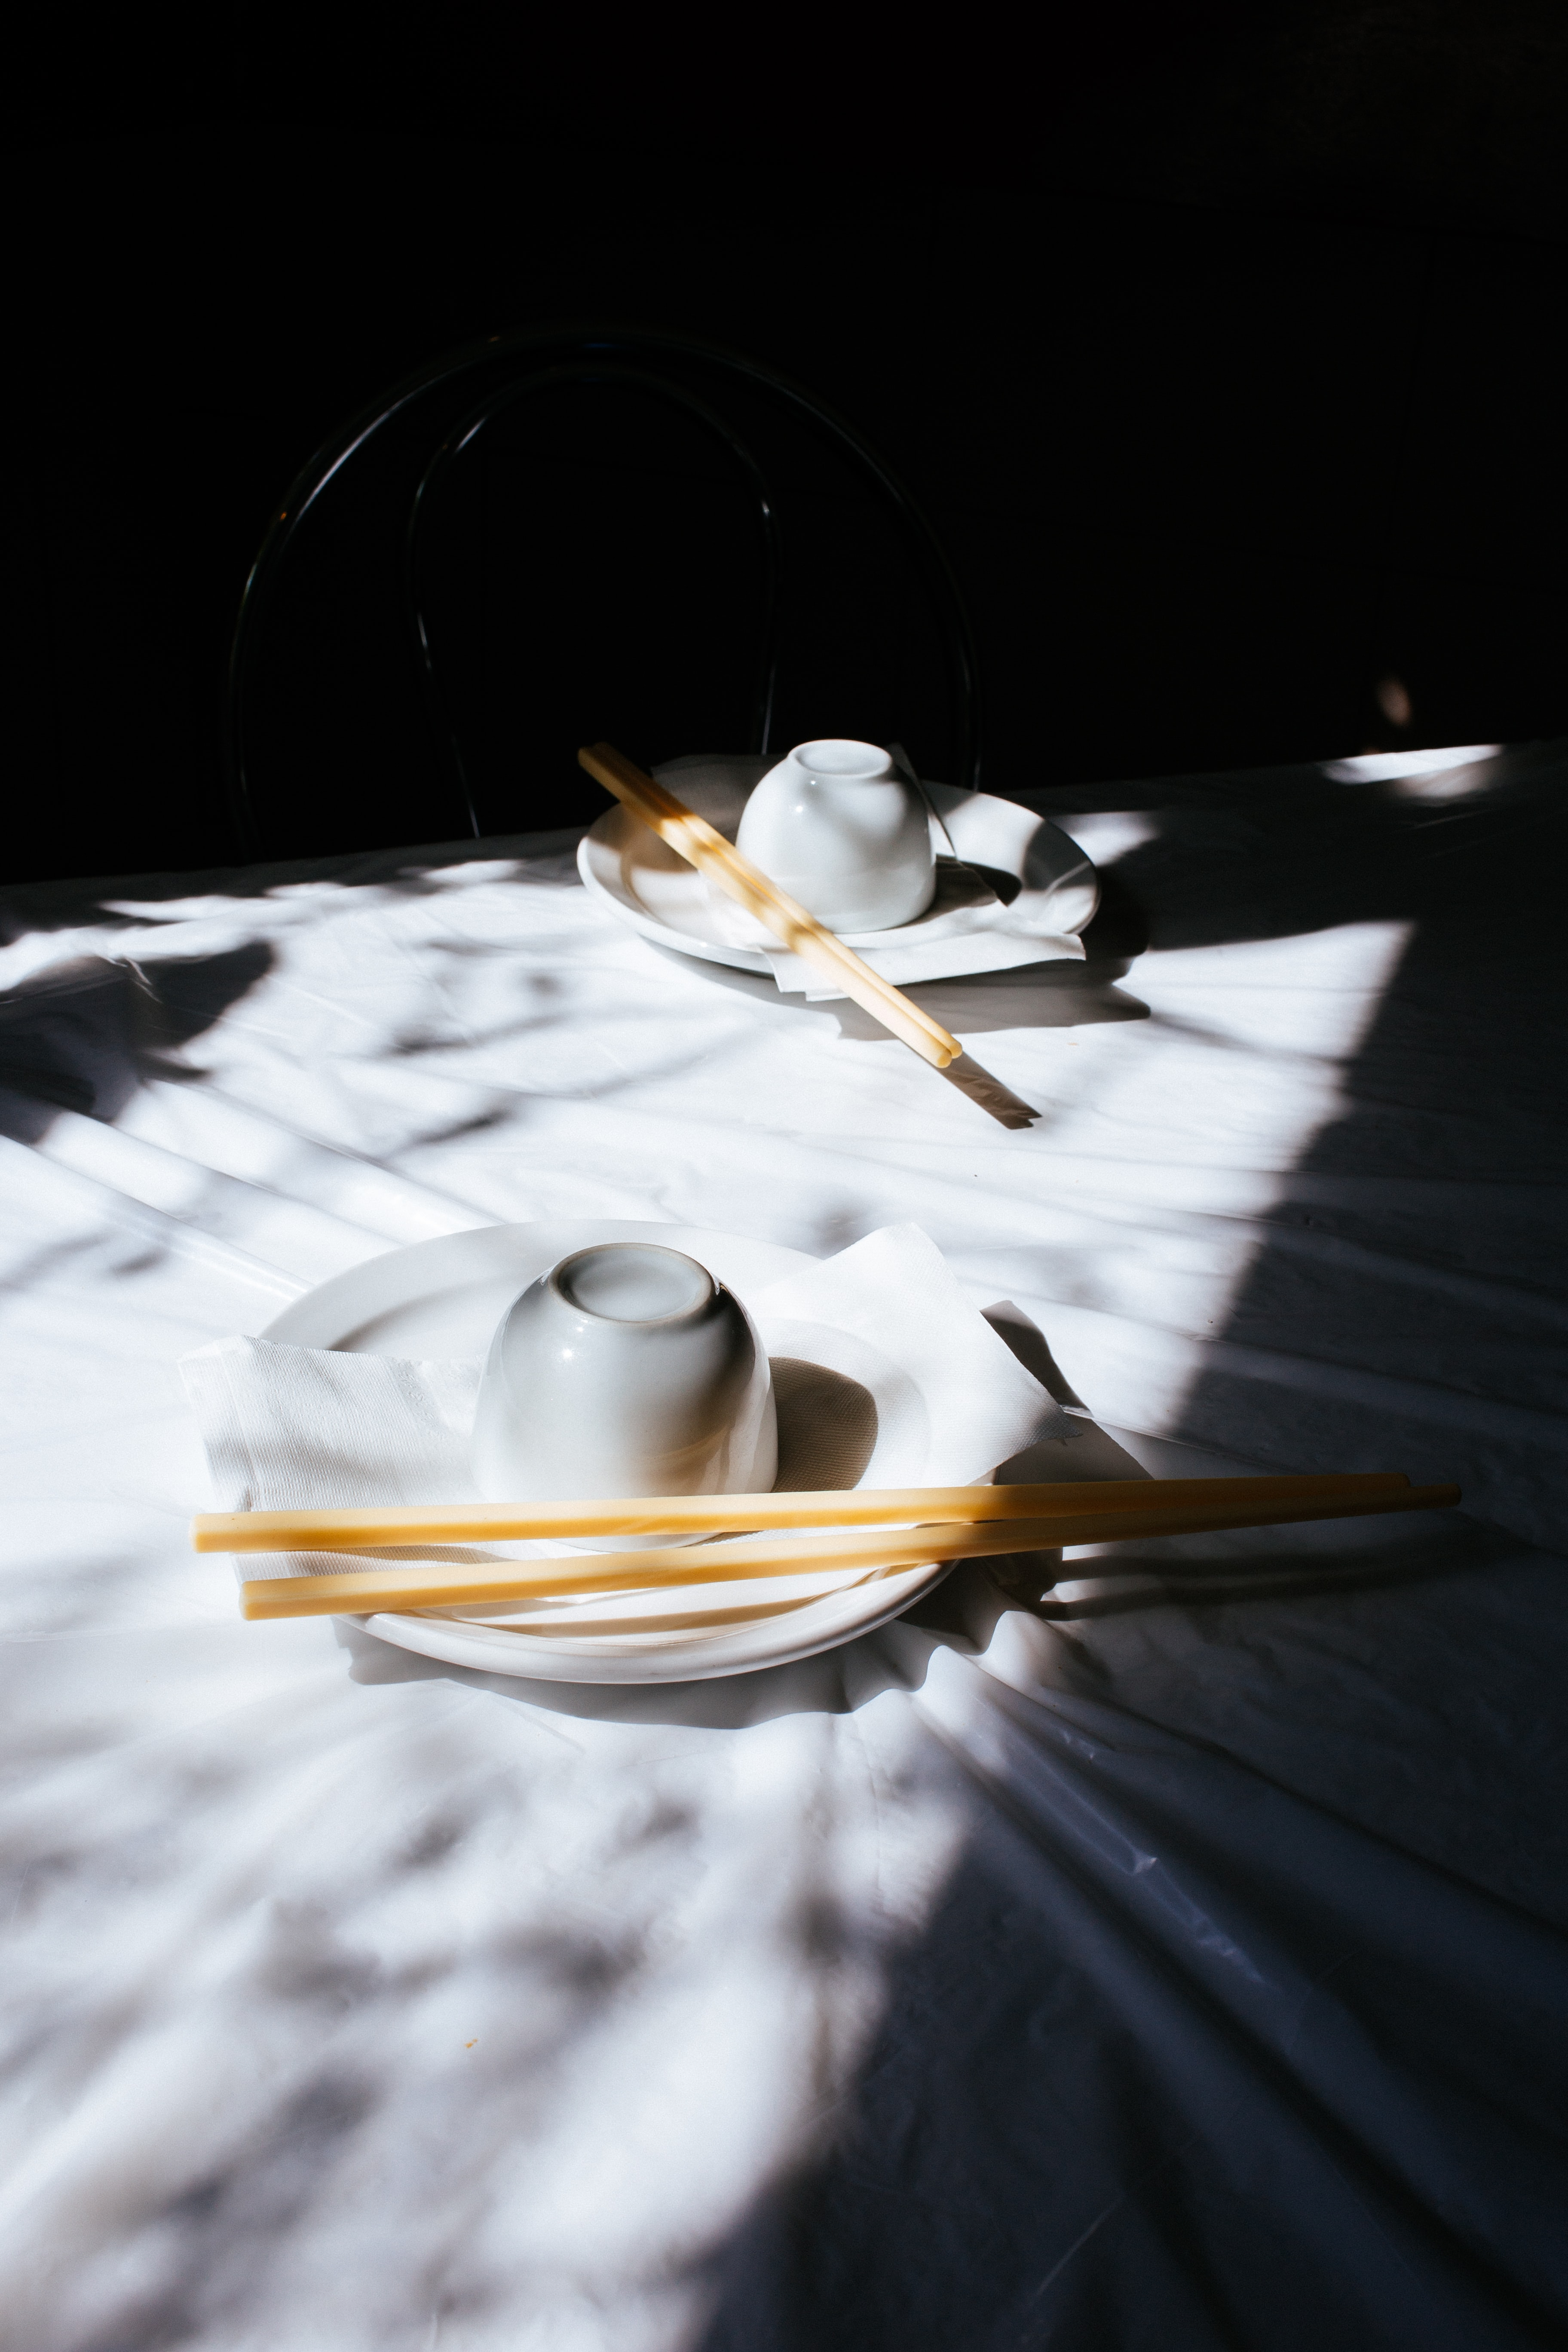 white ceramic teacup and saucer on white tablecloth